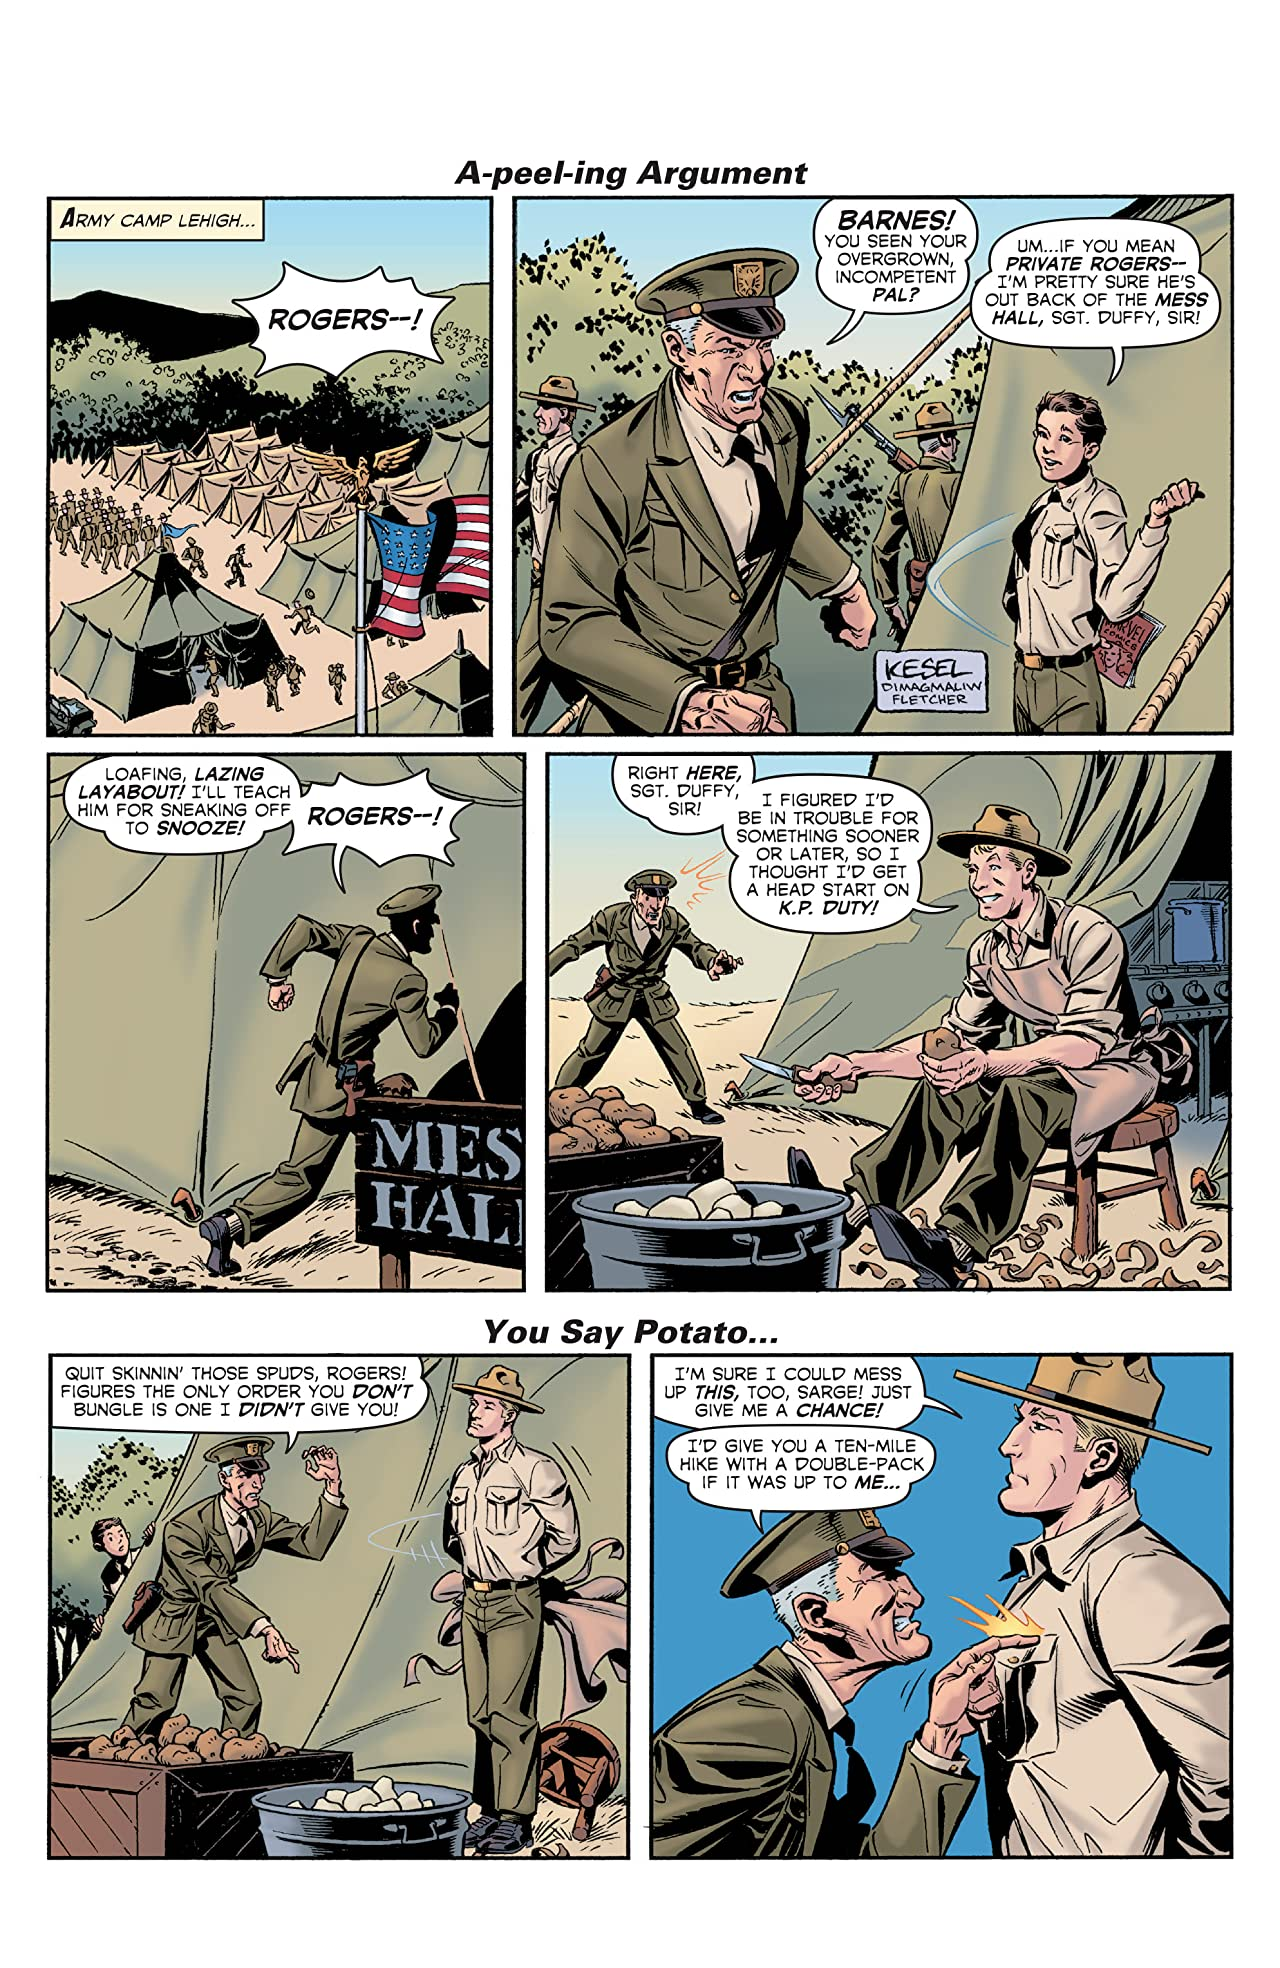 Captain America The 1940s Newspaper Strip (2010) #1 (of 3)